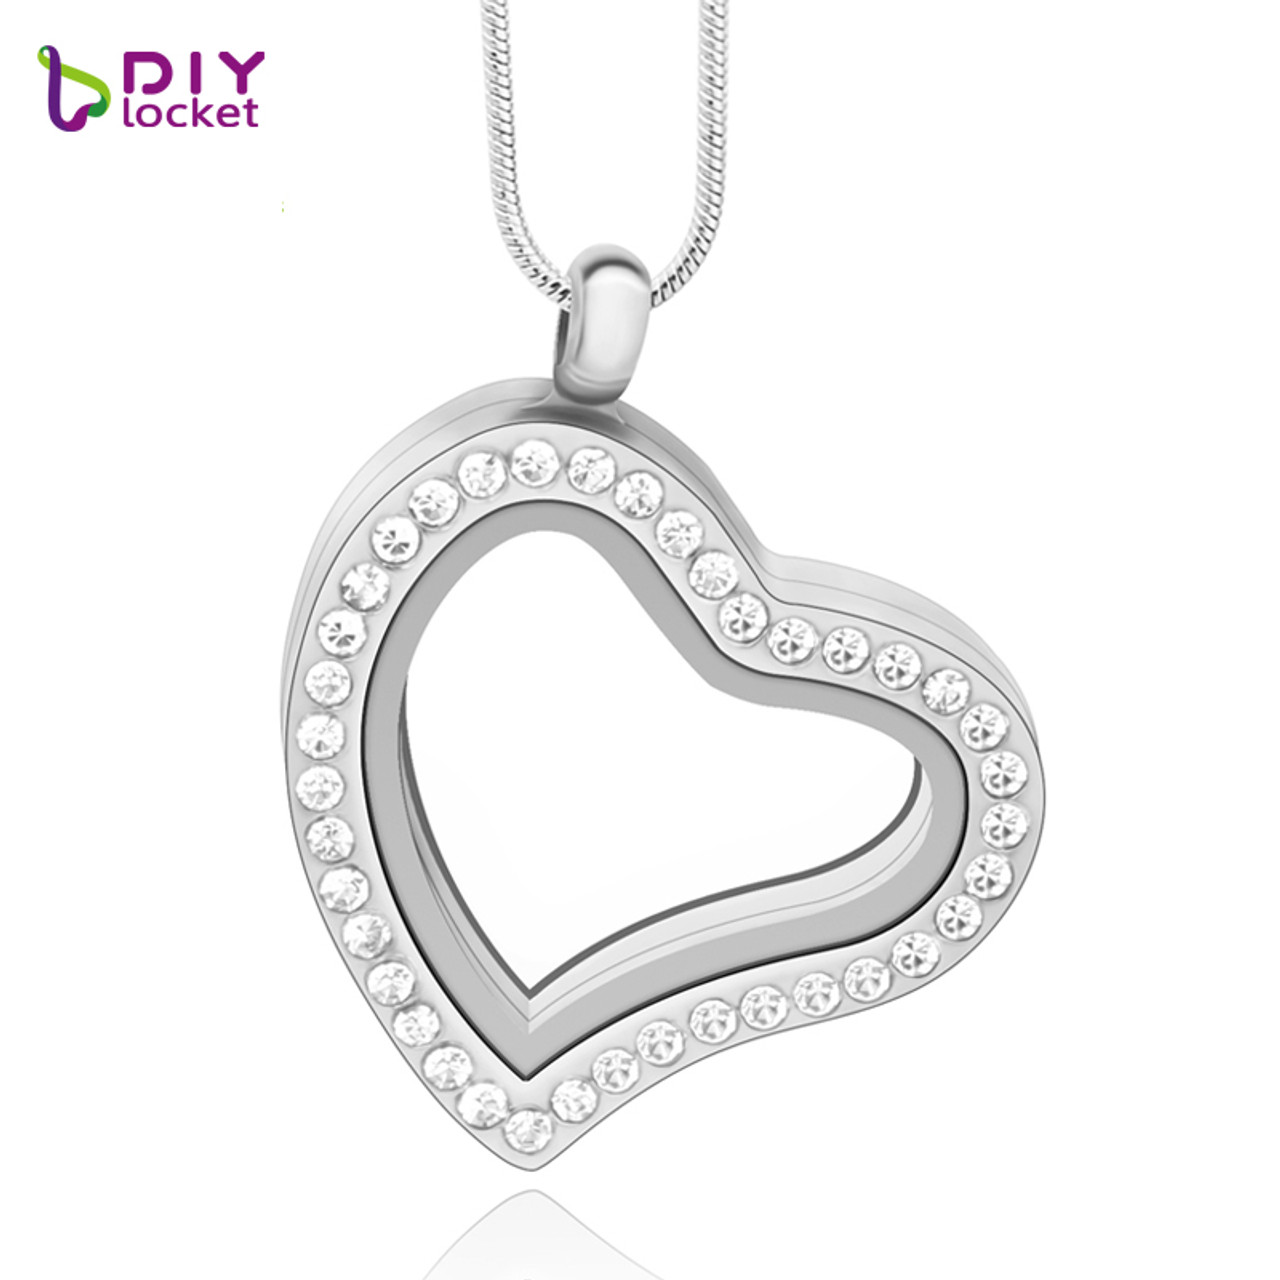 Diylocket jewelry wholesale hot superior quality silver heart fashion silver rhinestones floating heart charm glass heart shaped floating charm locket lsfl03 1 mozeypictures Images